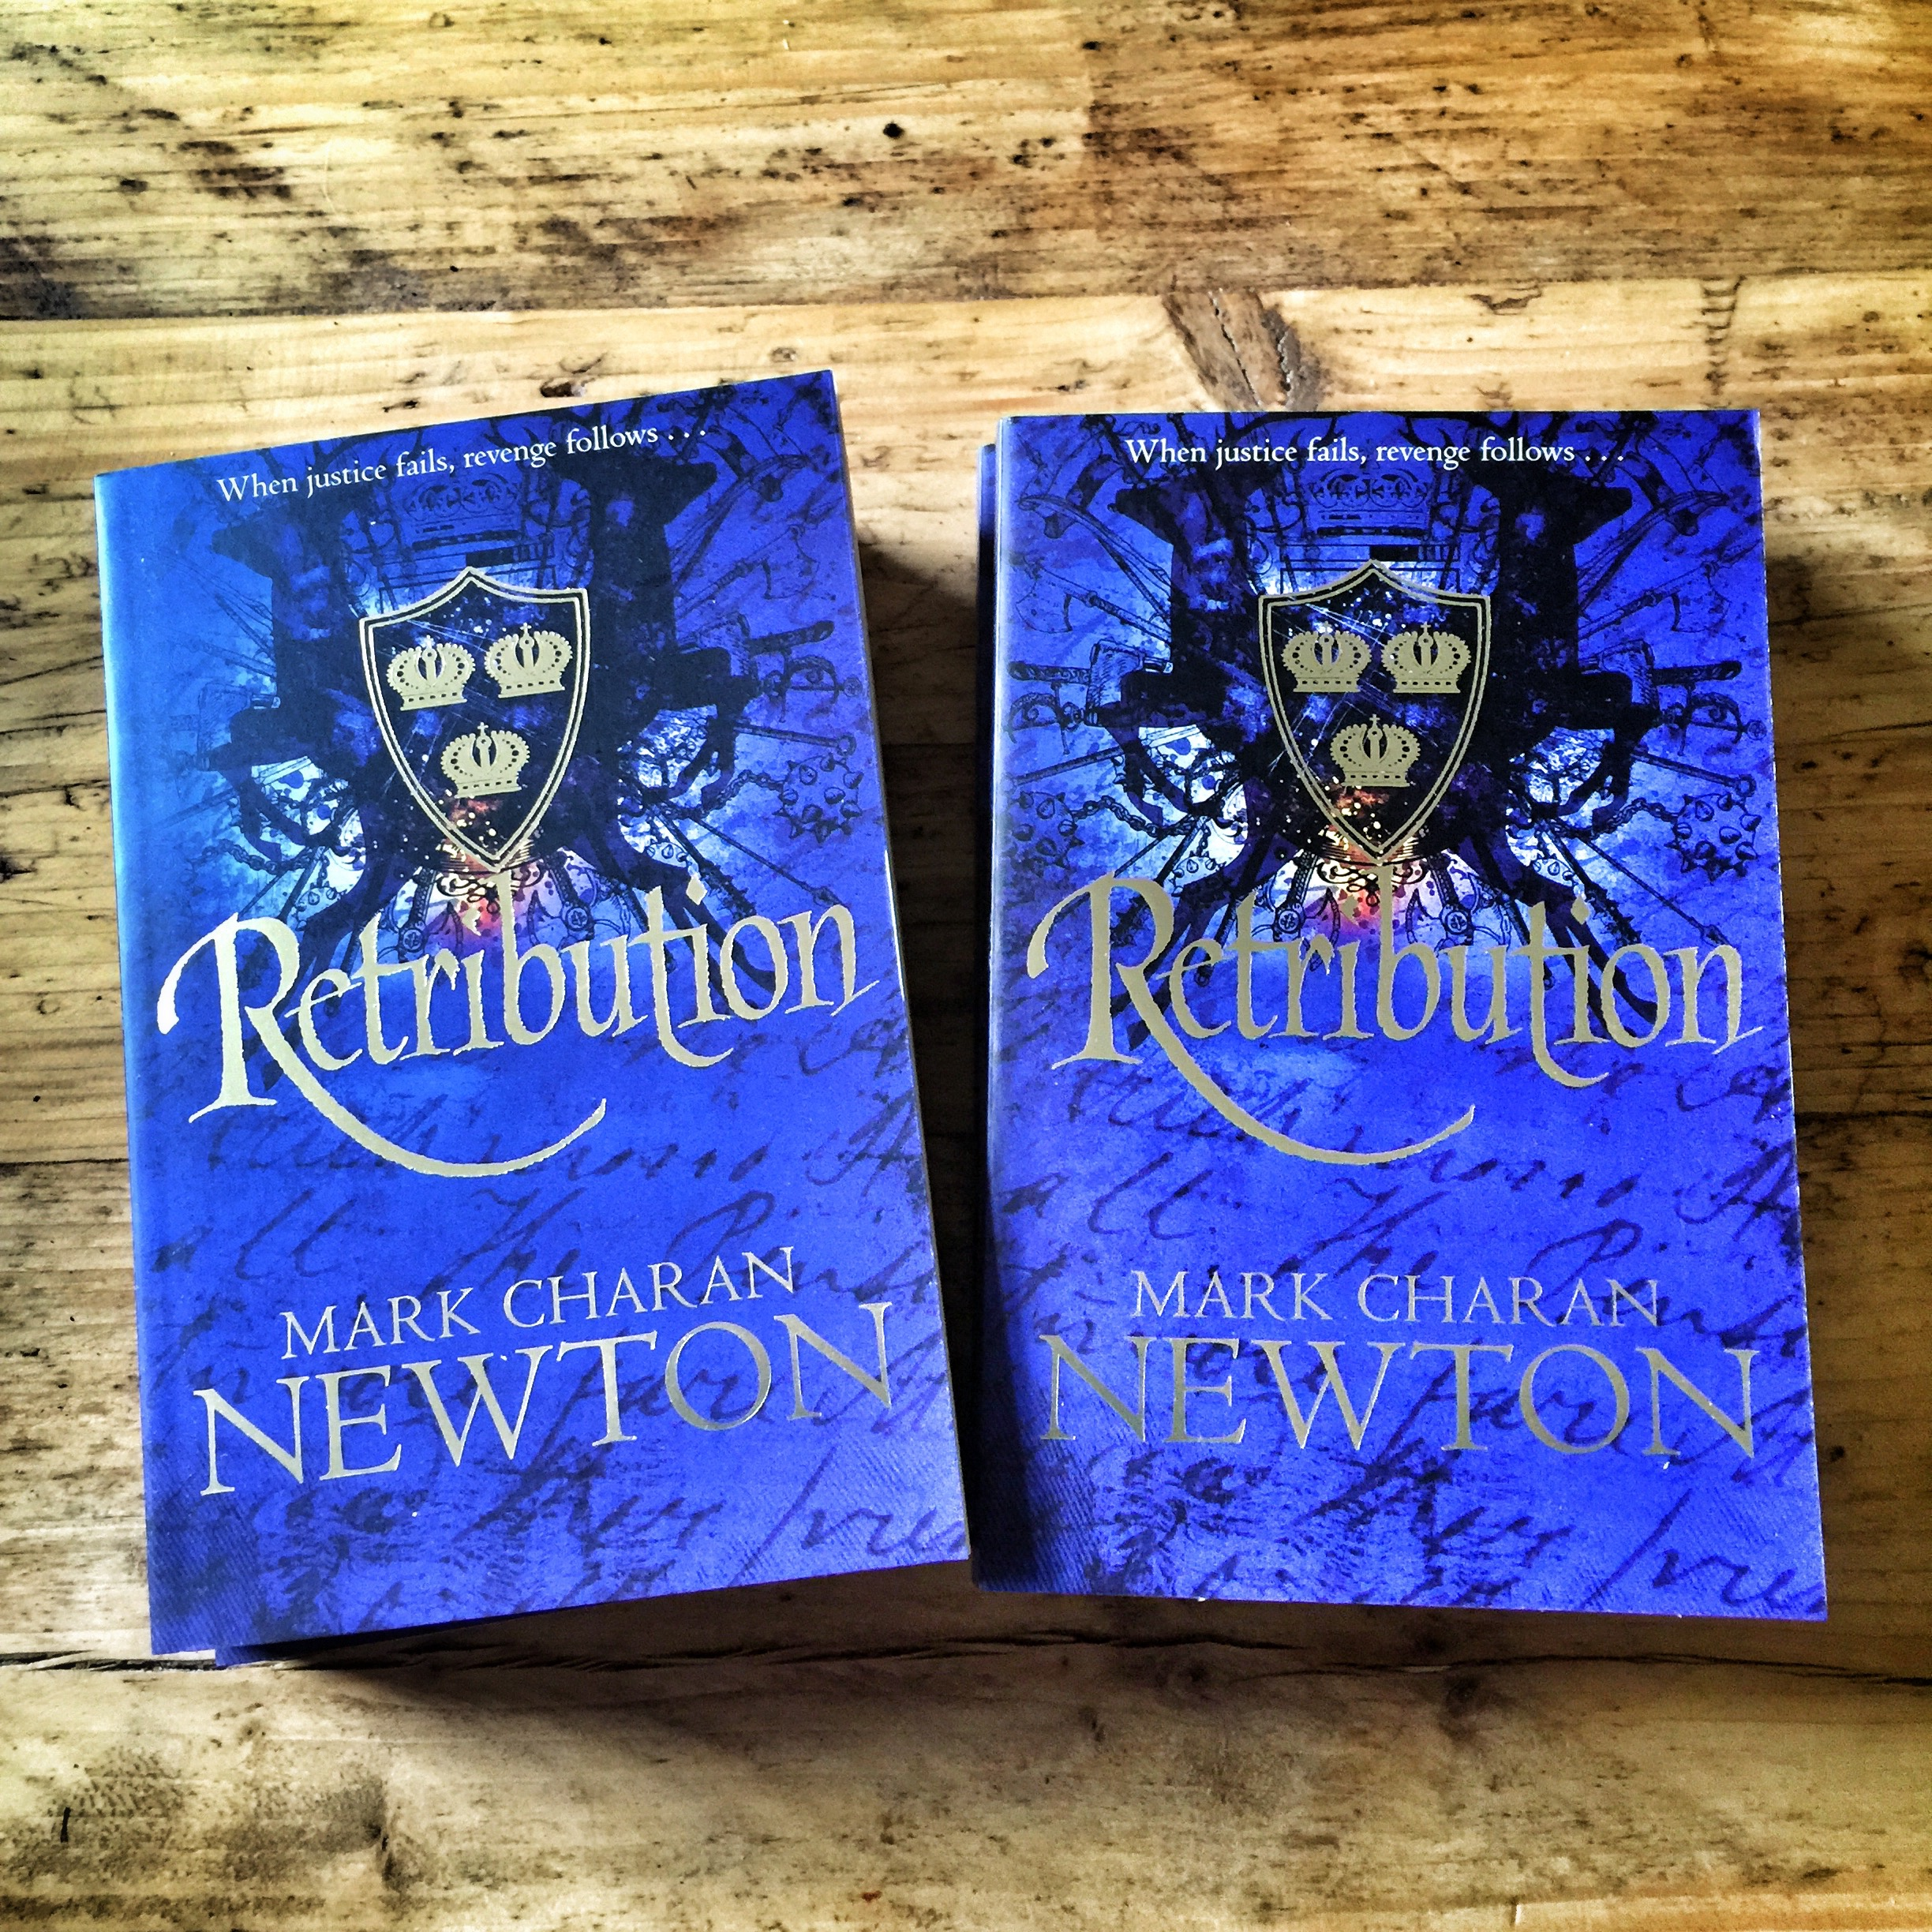 Retribution paperback copies